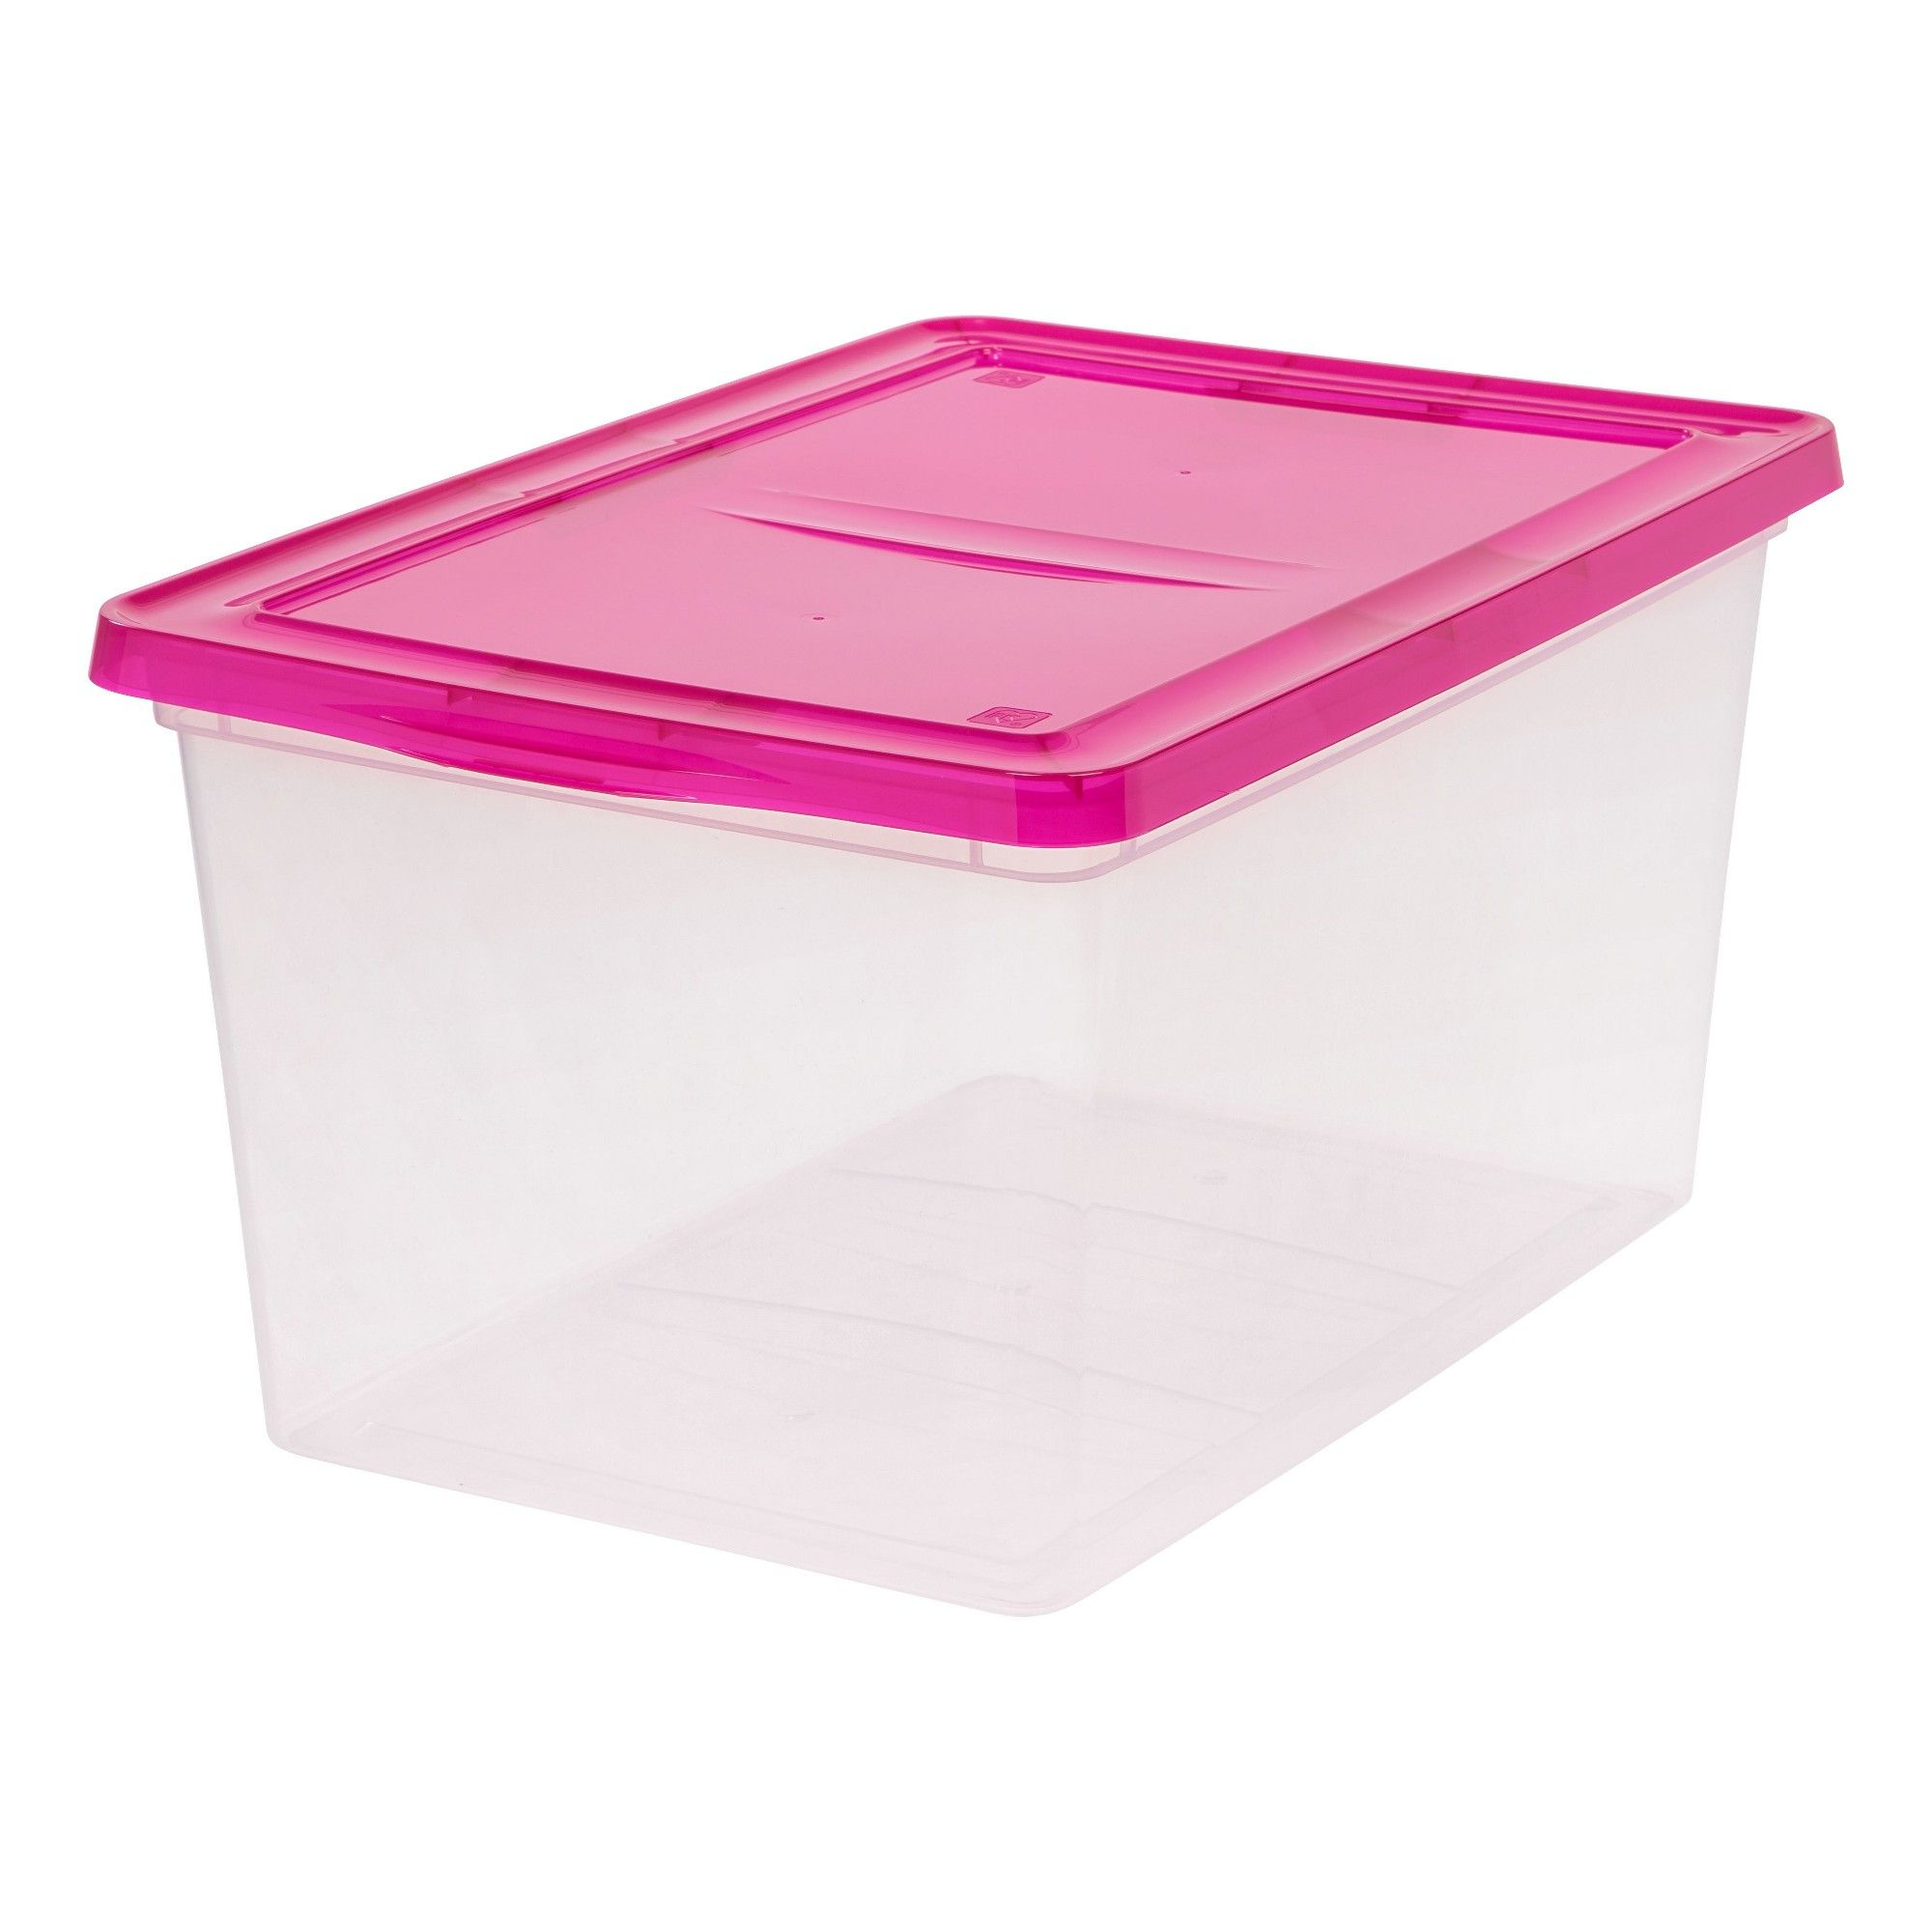 Amazing Plastic Storage Bins With Lids - e0e2d192542a78ef964fb65a75270ce0  Pic_708687.jpg